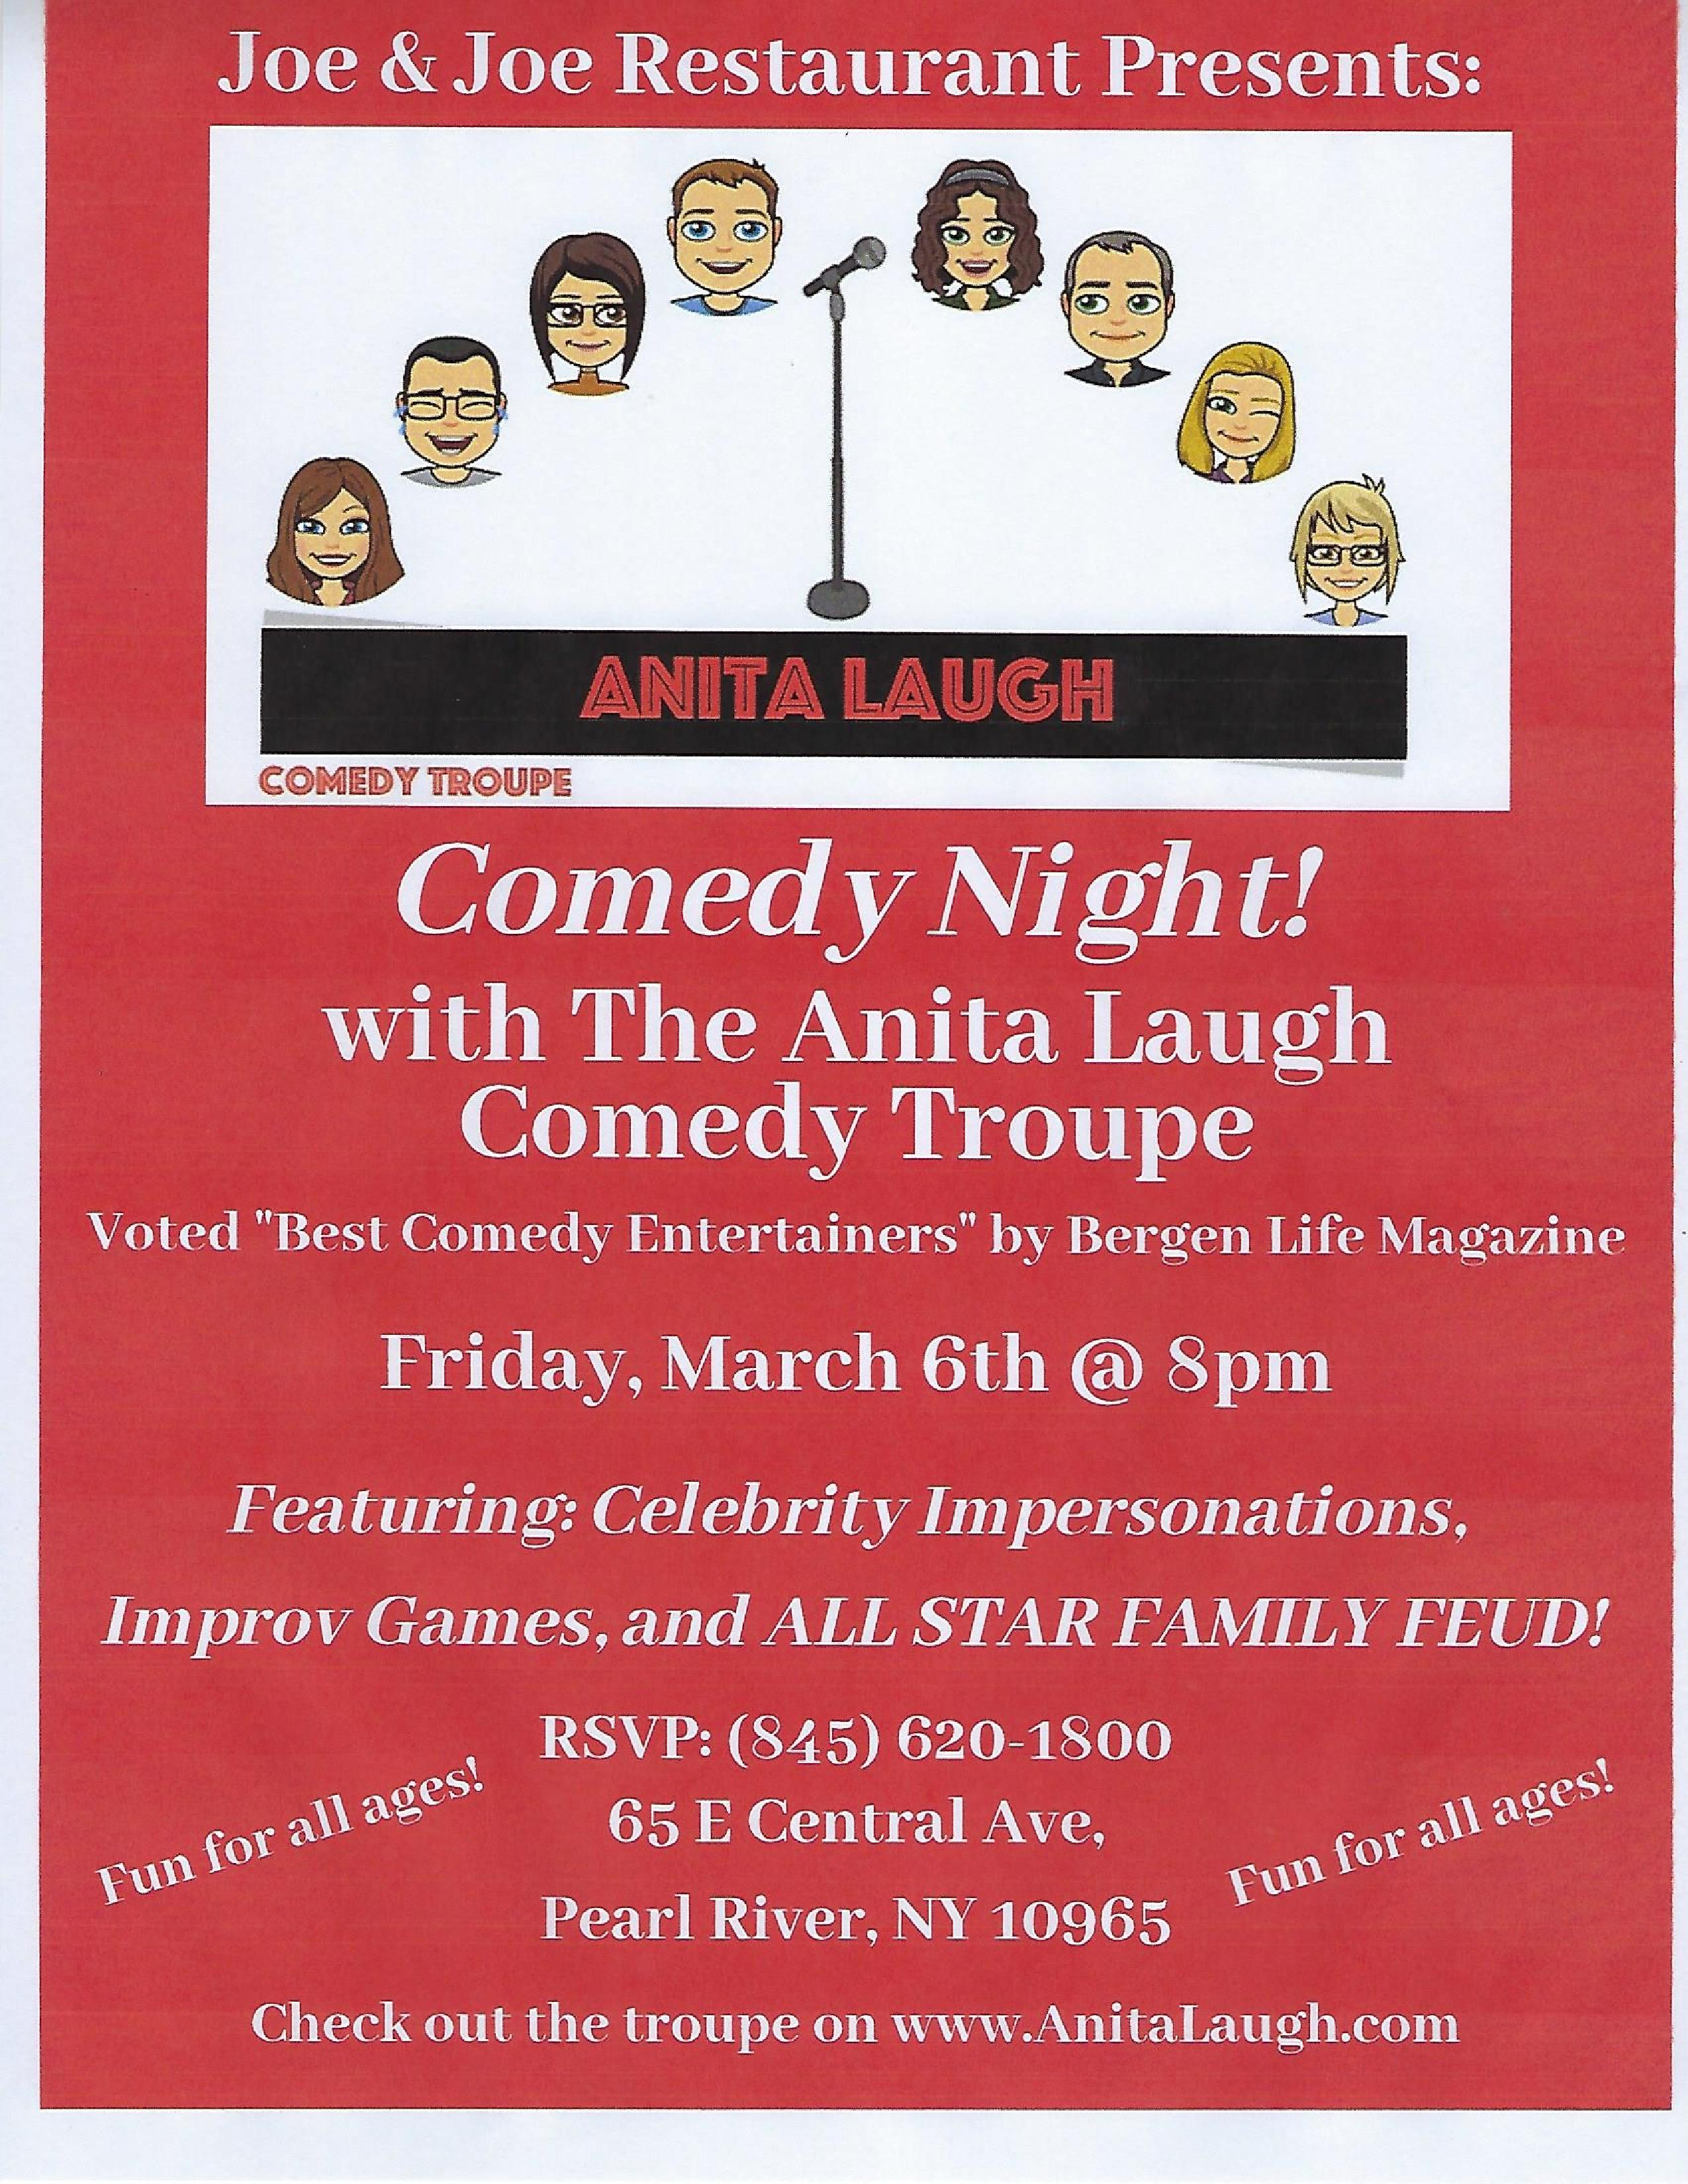 Anita Laugh Comedy Night! with the Anita Laugh Comedy Troupe - Friday, March 6th at 8pm - Featuring Celebrity Impersonations, Improv games and All Star Family Feud!